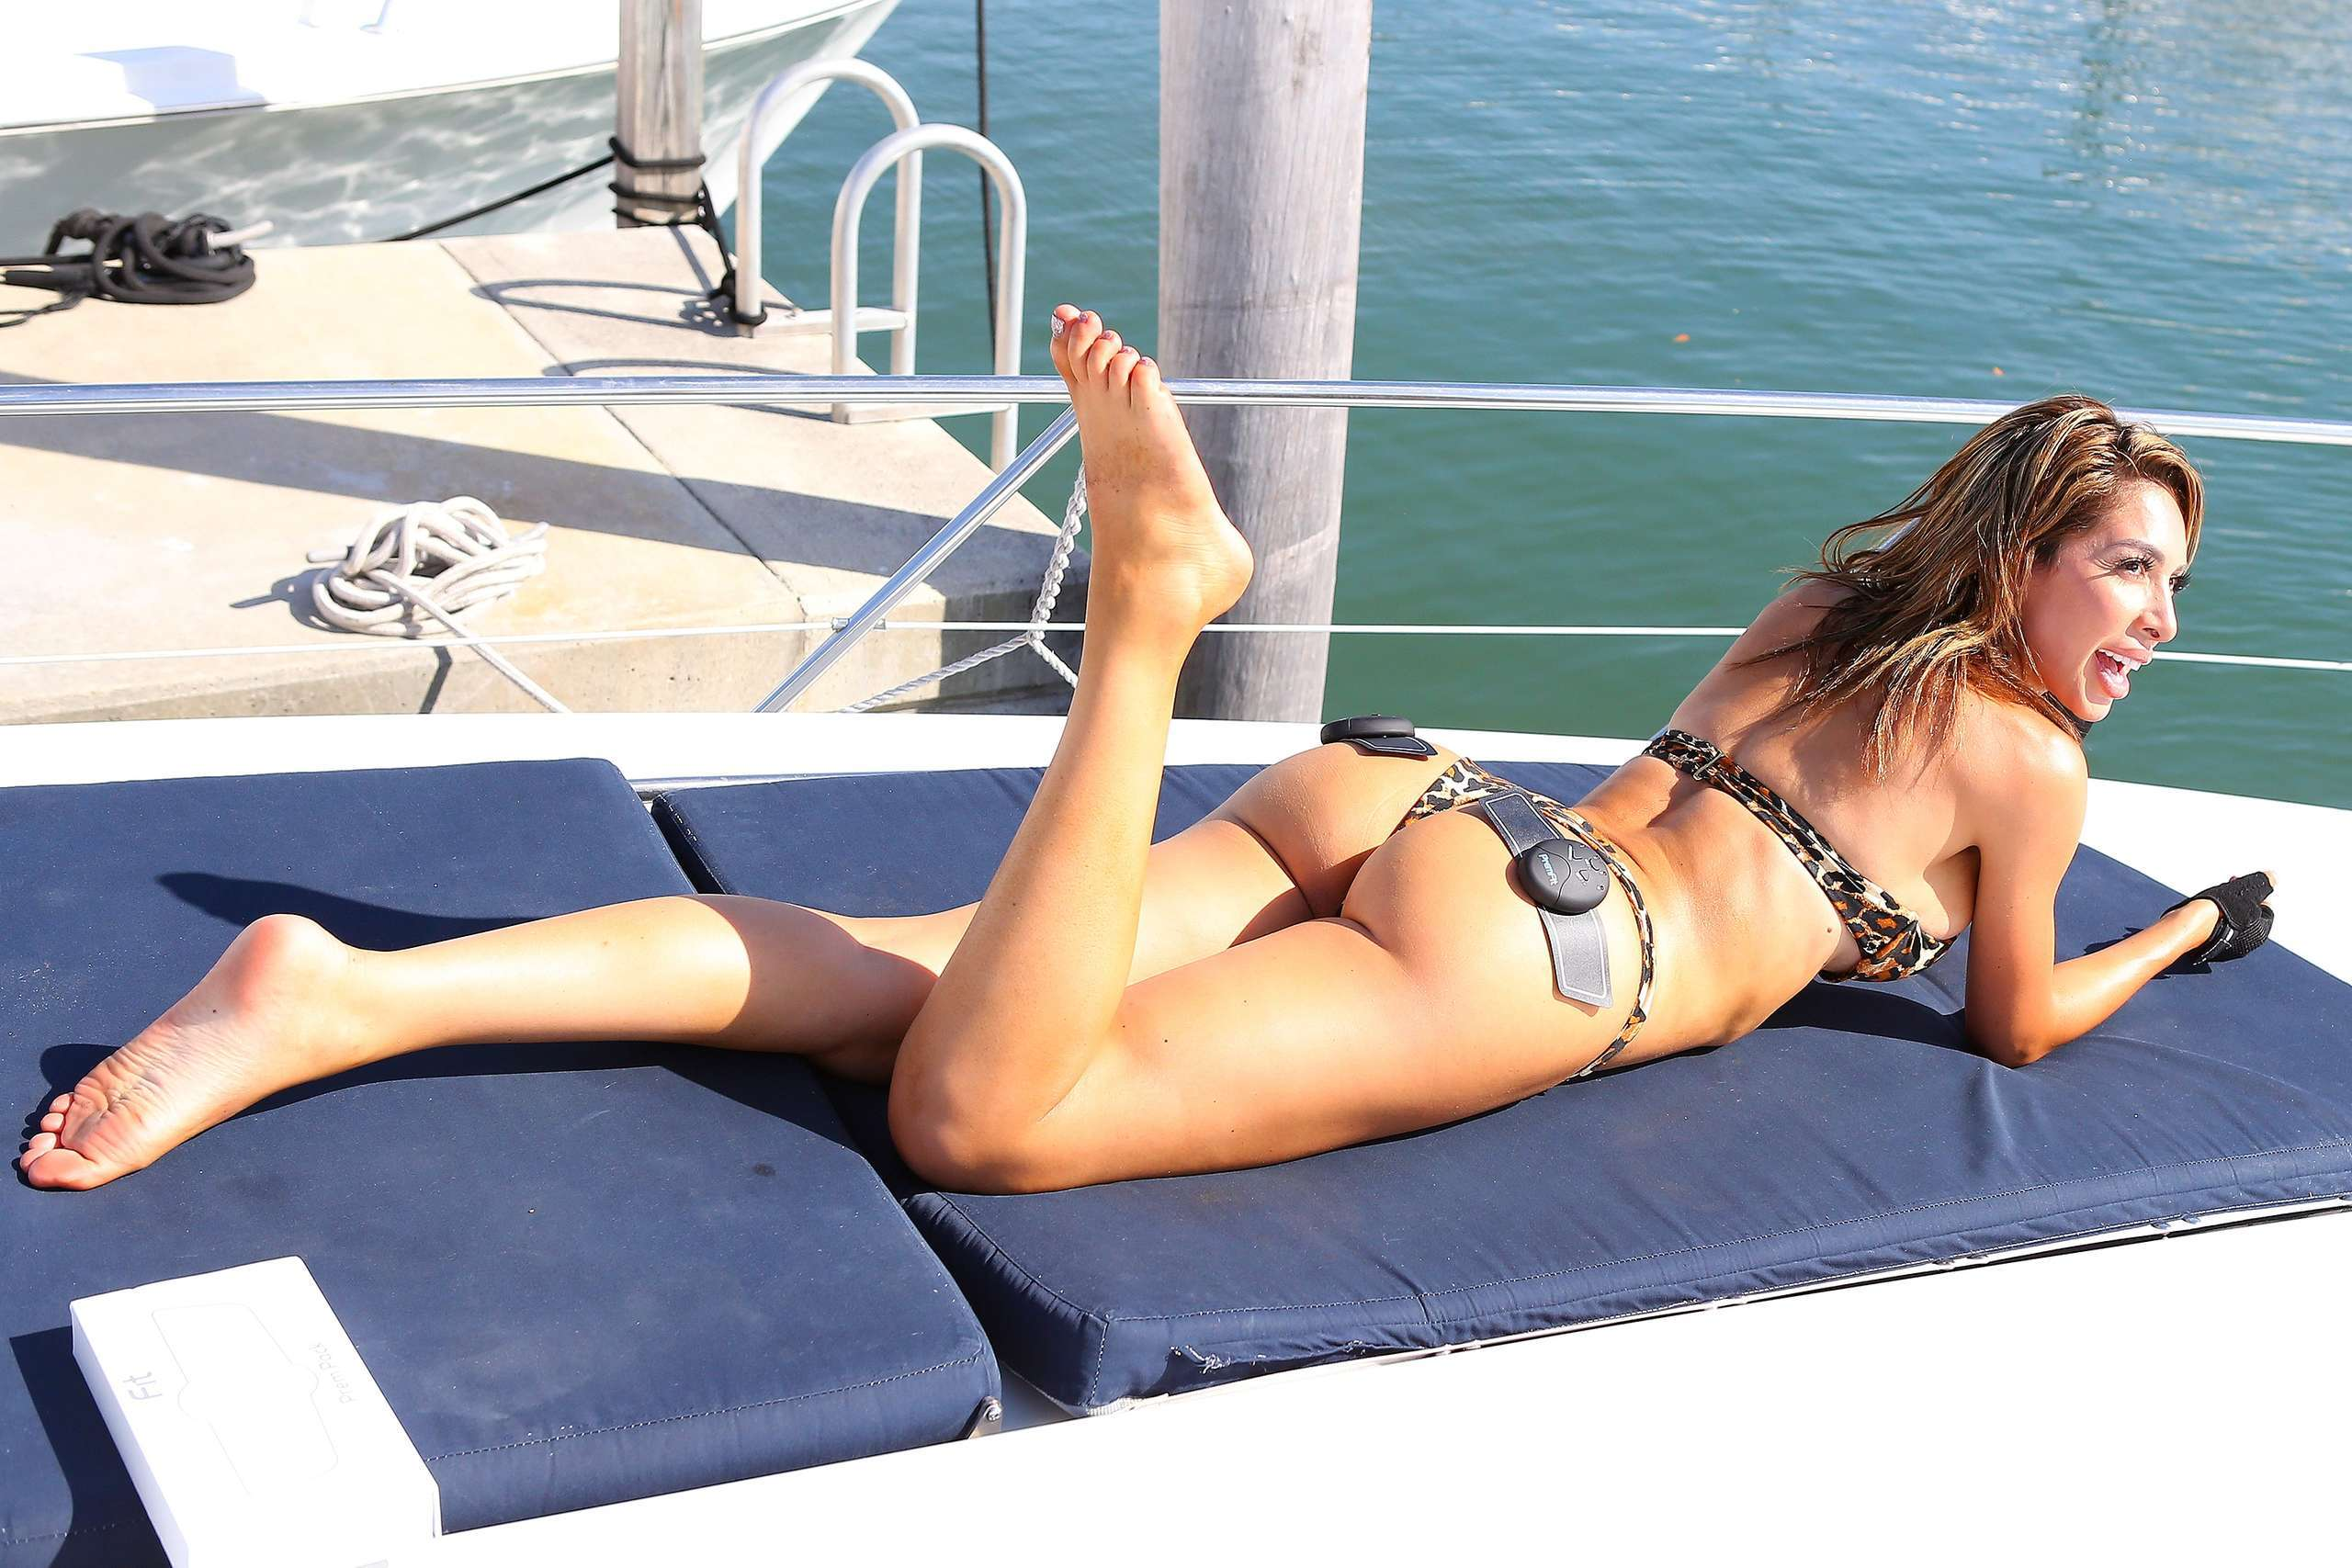 Farrah Abraham Booty, Training on a Boat in Florida